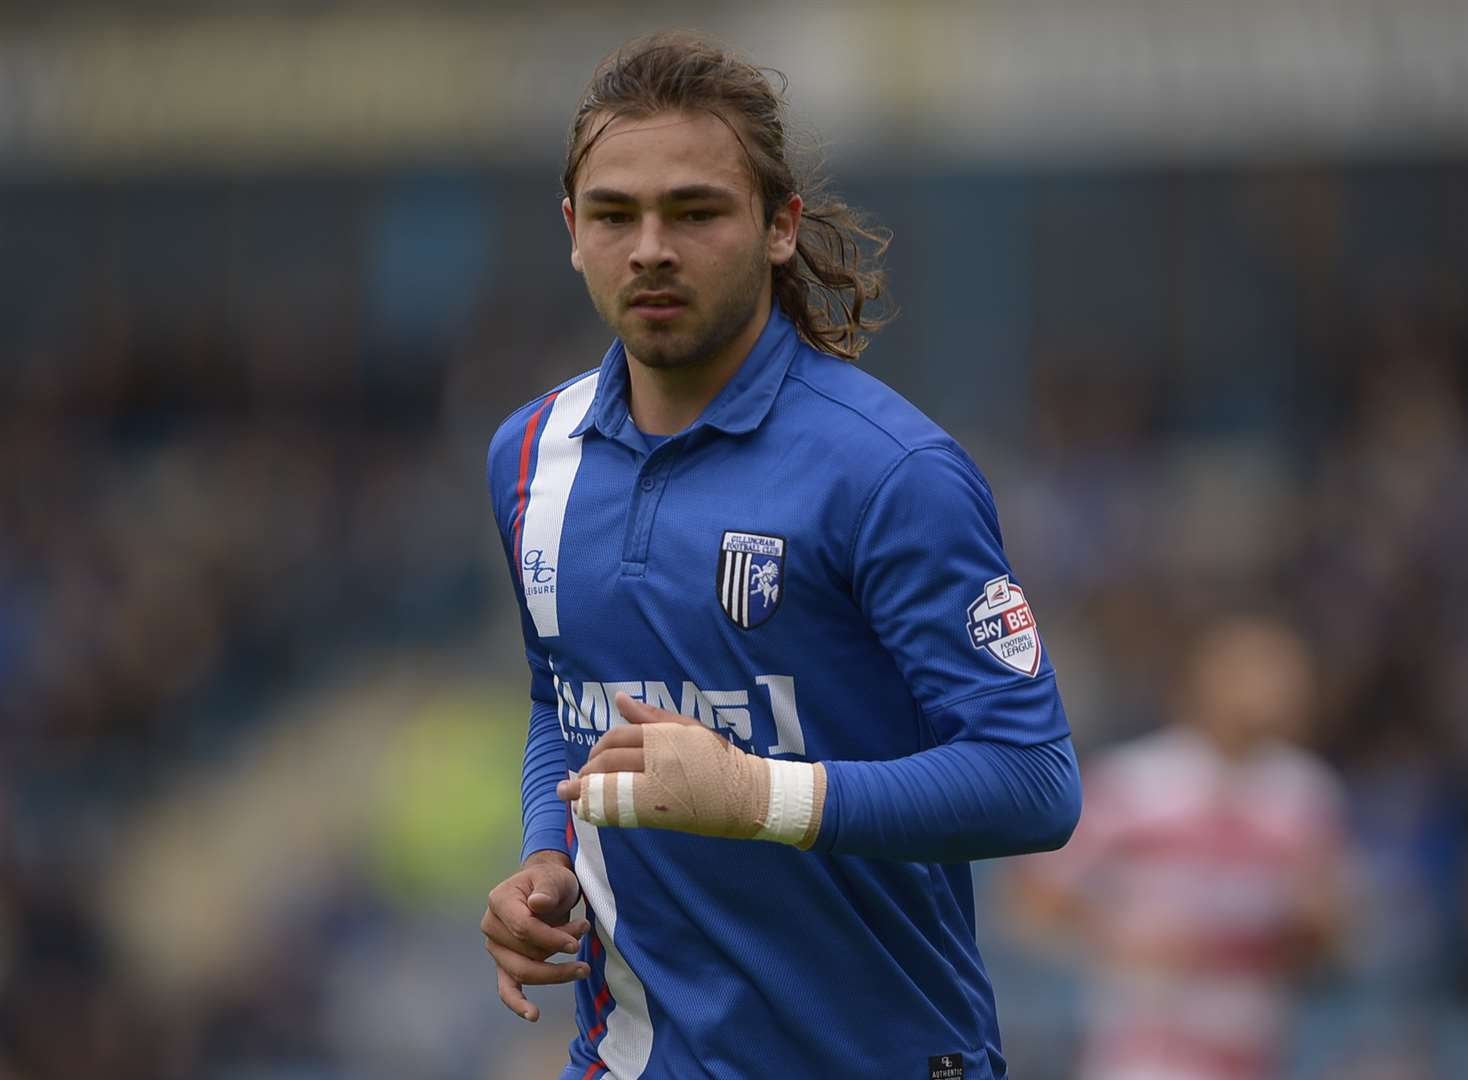 The Shouting Men with Bradley Dack